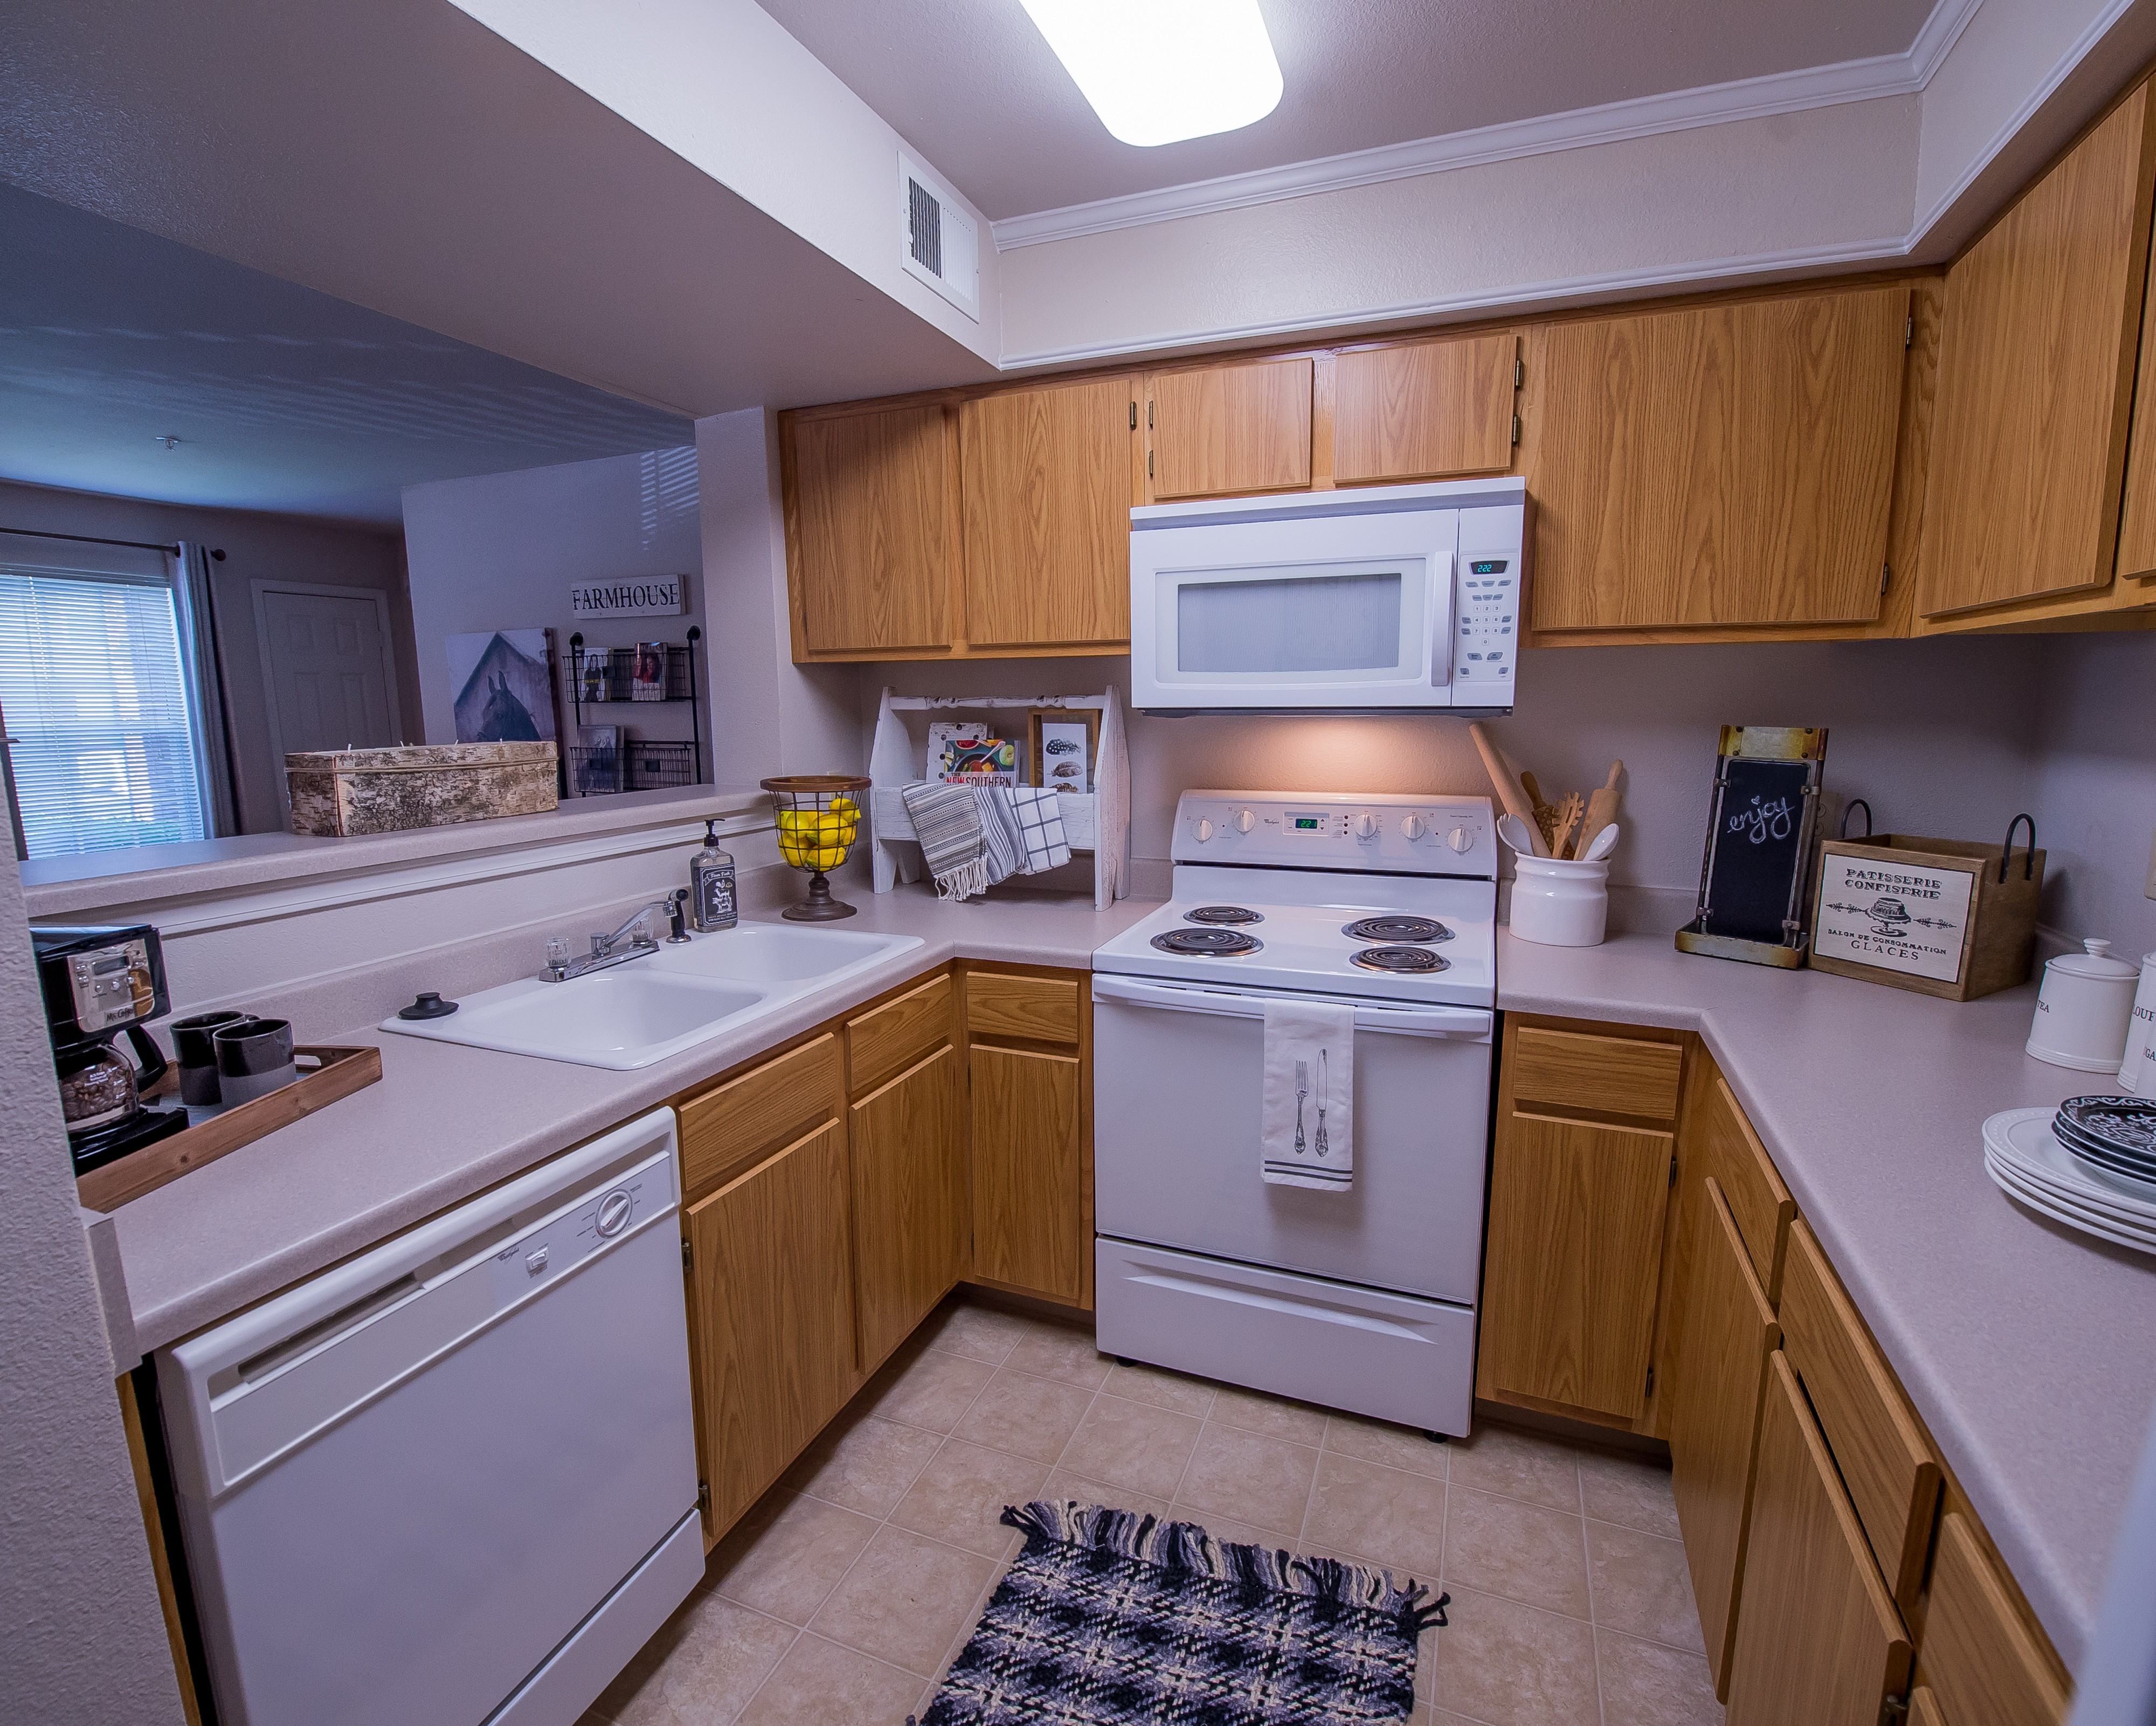 Apartments Near WSU Remington Wichita for Wichita State University Students in Wichita, KS